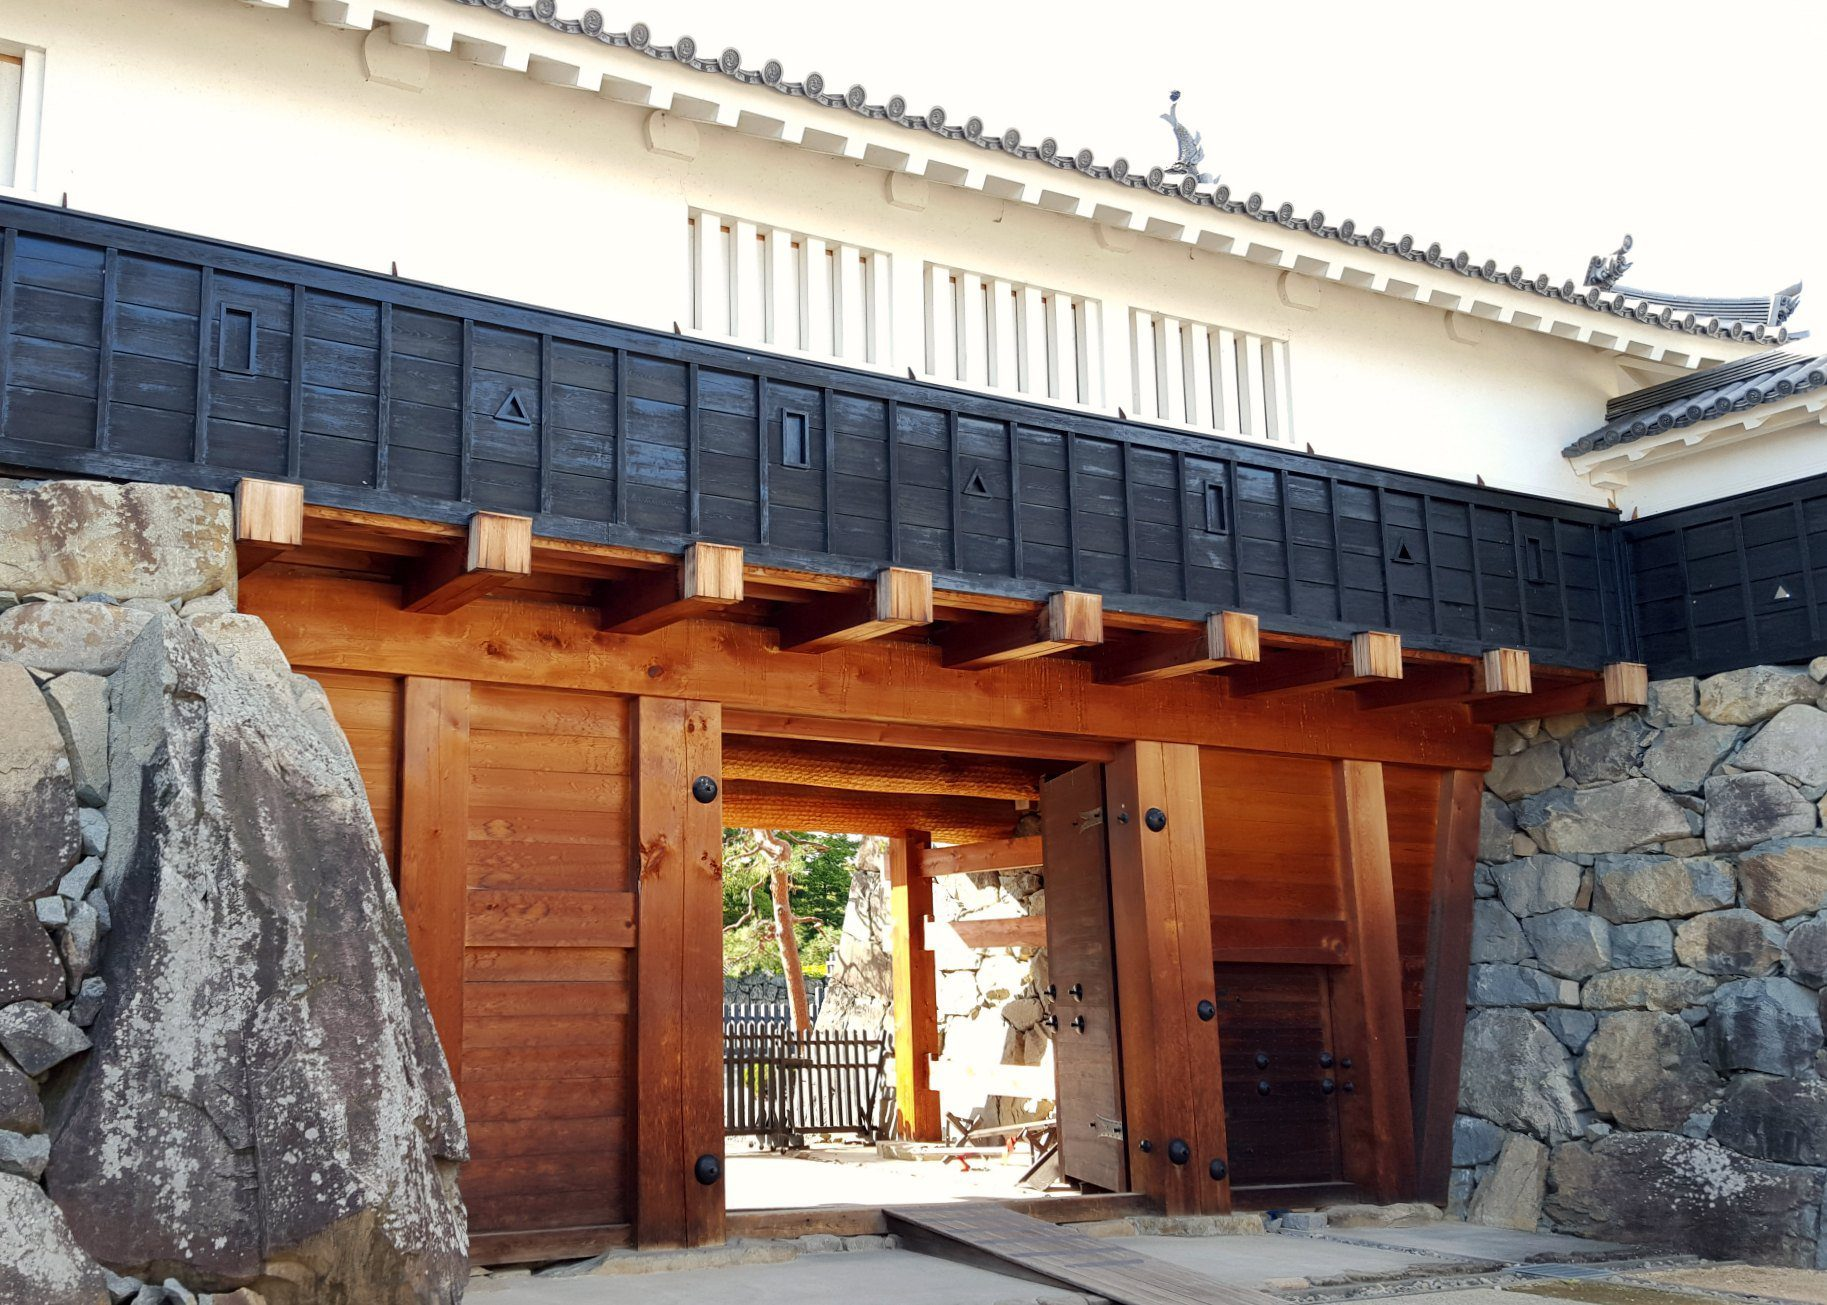 Eastern Taikomon Gate at Matsumoto Castl, Japan